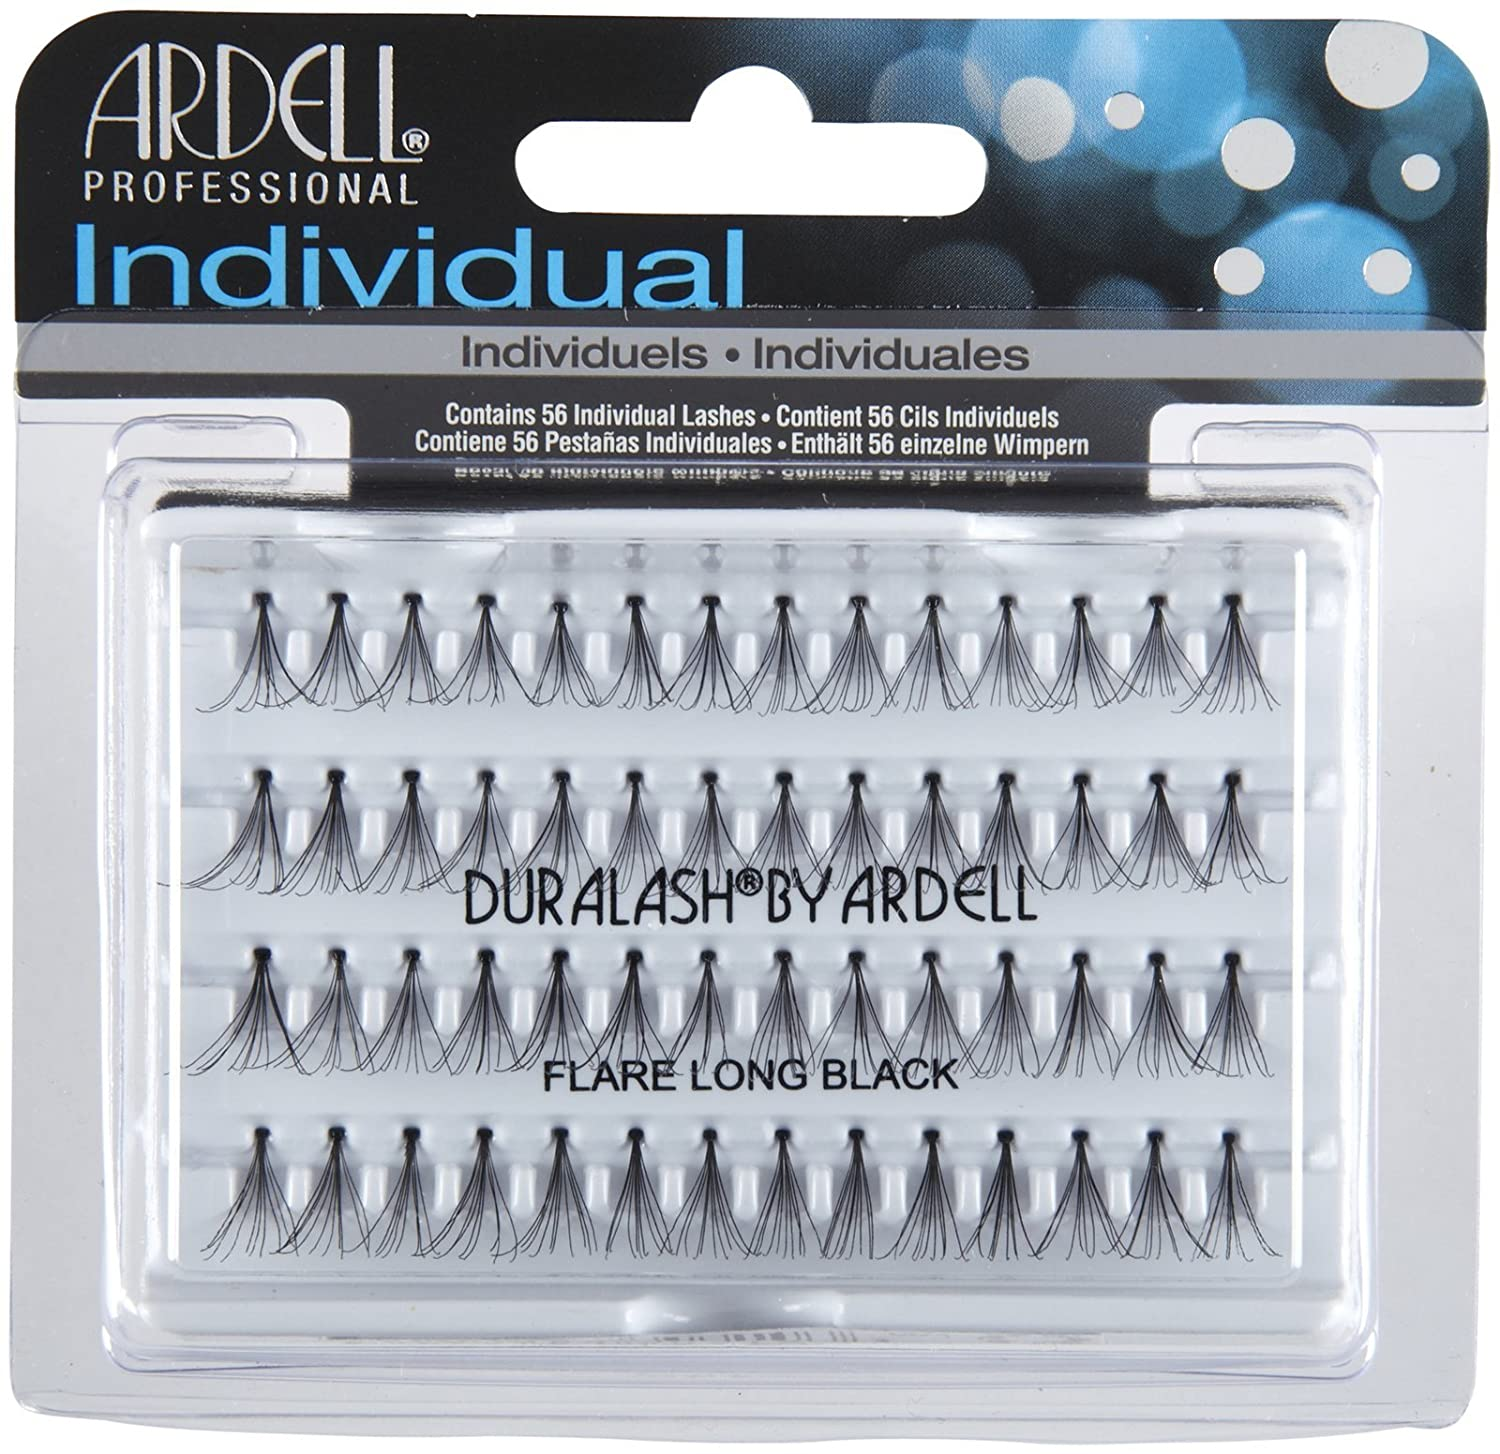 ardell single lashes